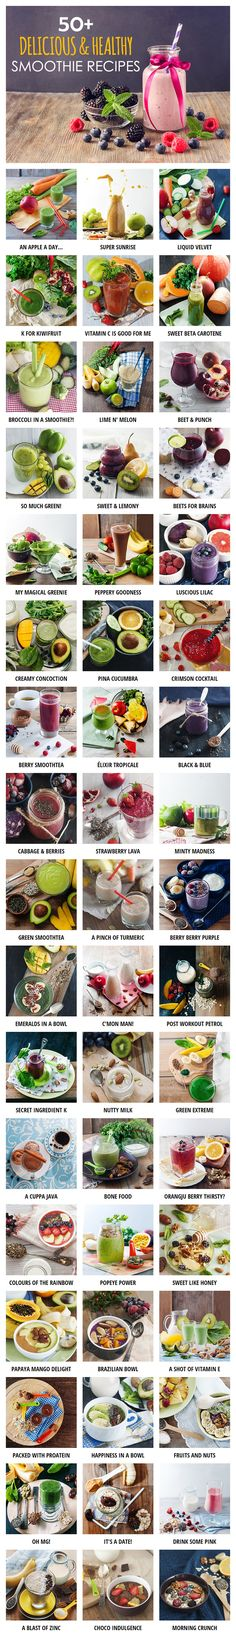 Use our healthy smoothie finder tool to discover new recipes. You can filter smoothies based on ingredients, nutrition (calories, protein etc) and category!